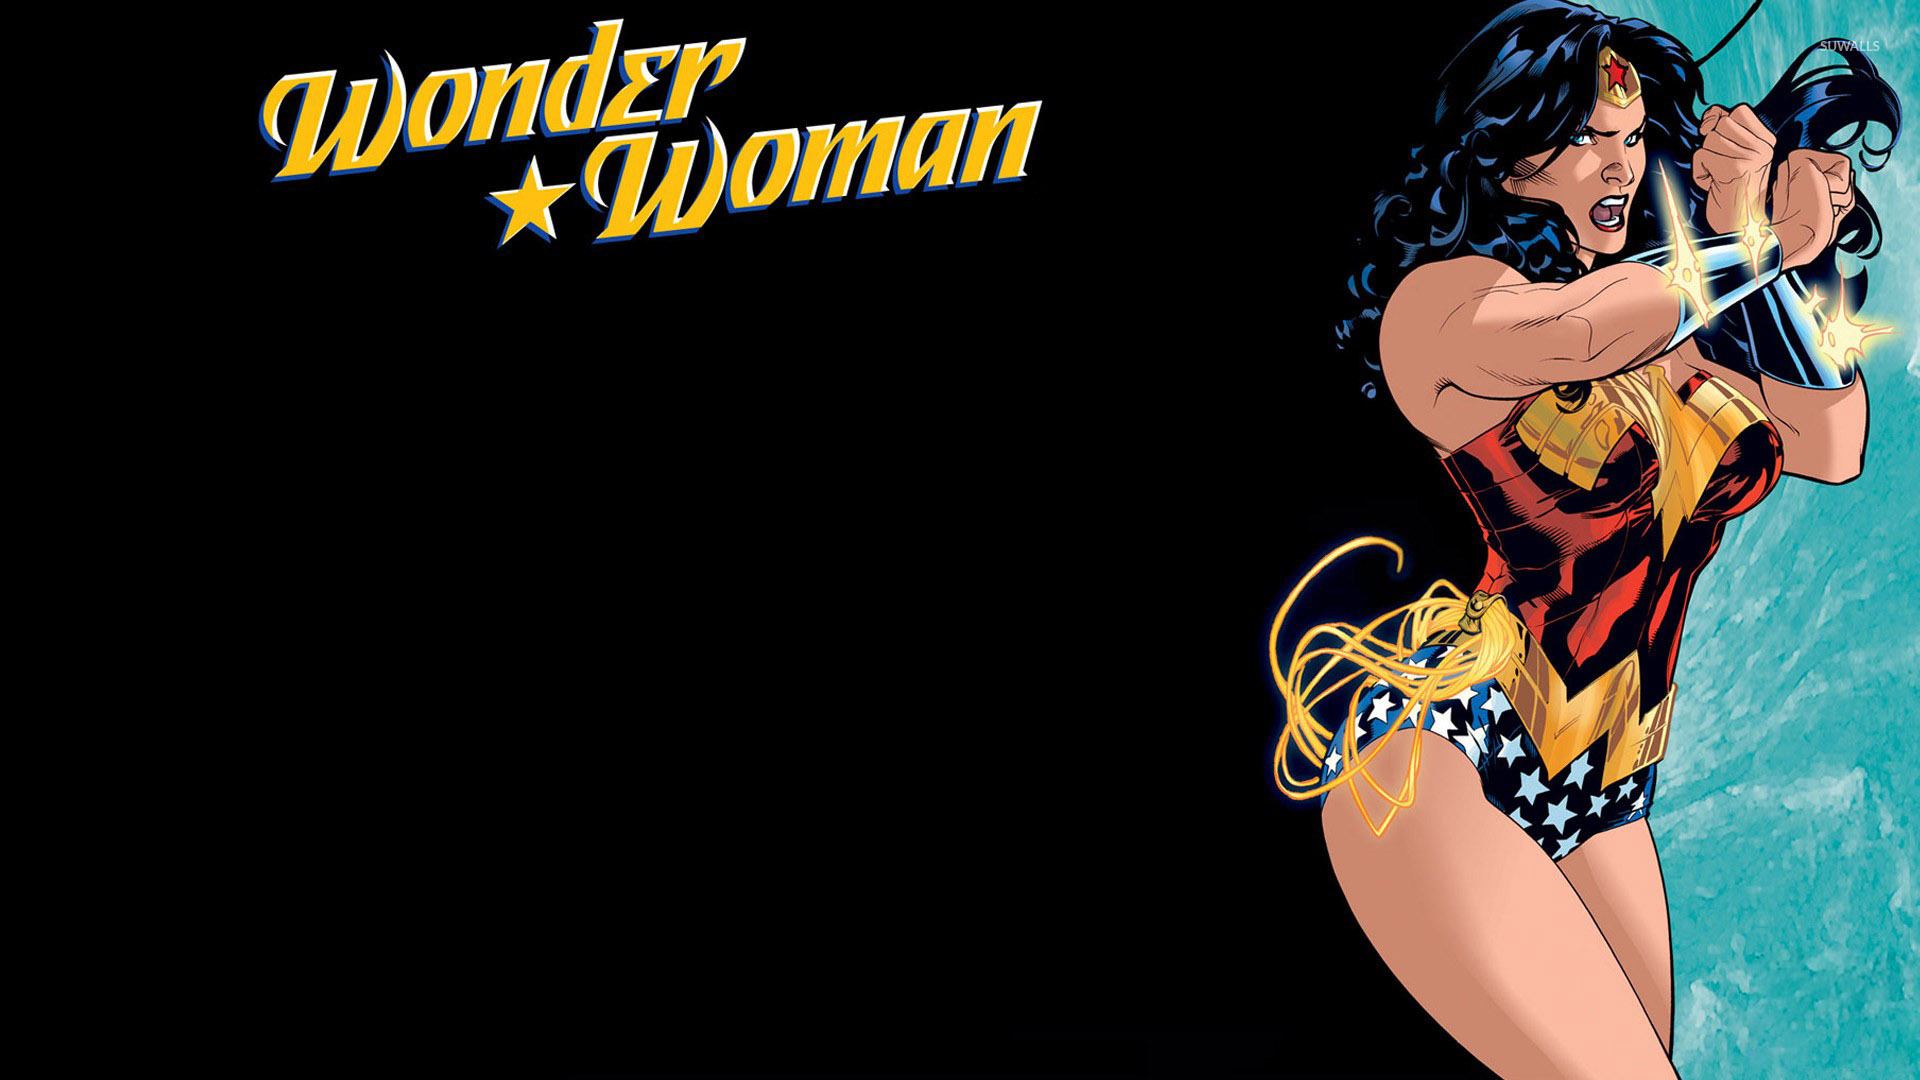 Cute Couple Wallpapers For Lock Screen Download Wonder Woman Wallpaper 1920x1080 Gallery